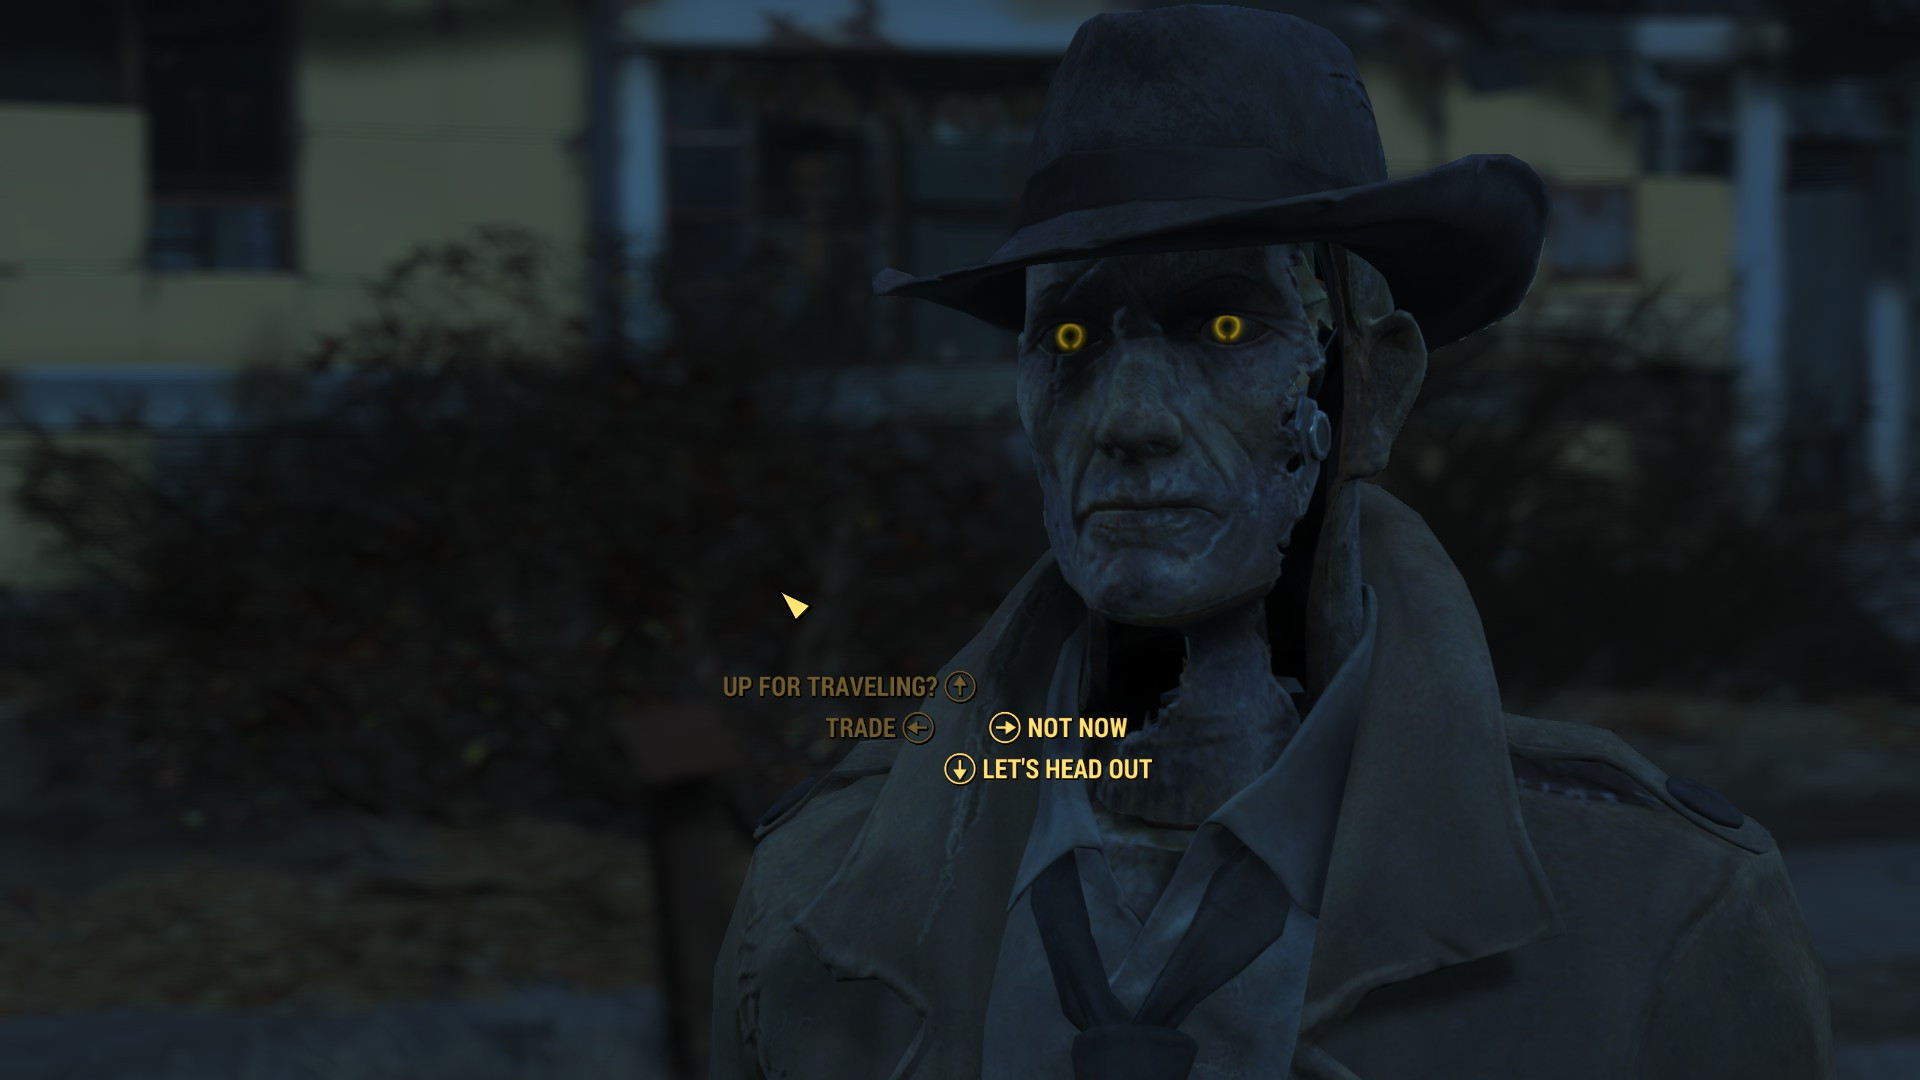 fallout 4 nick valentine likes and dislikes in a relationship